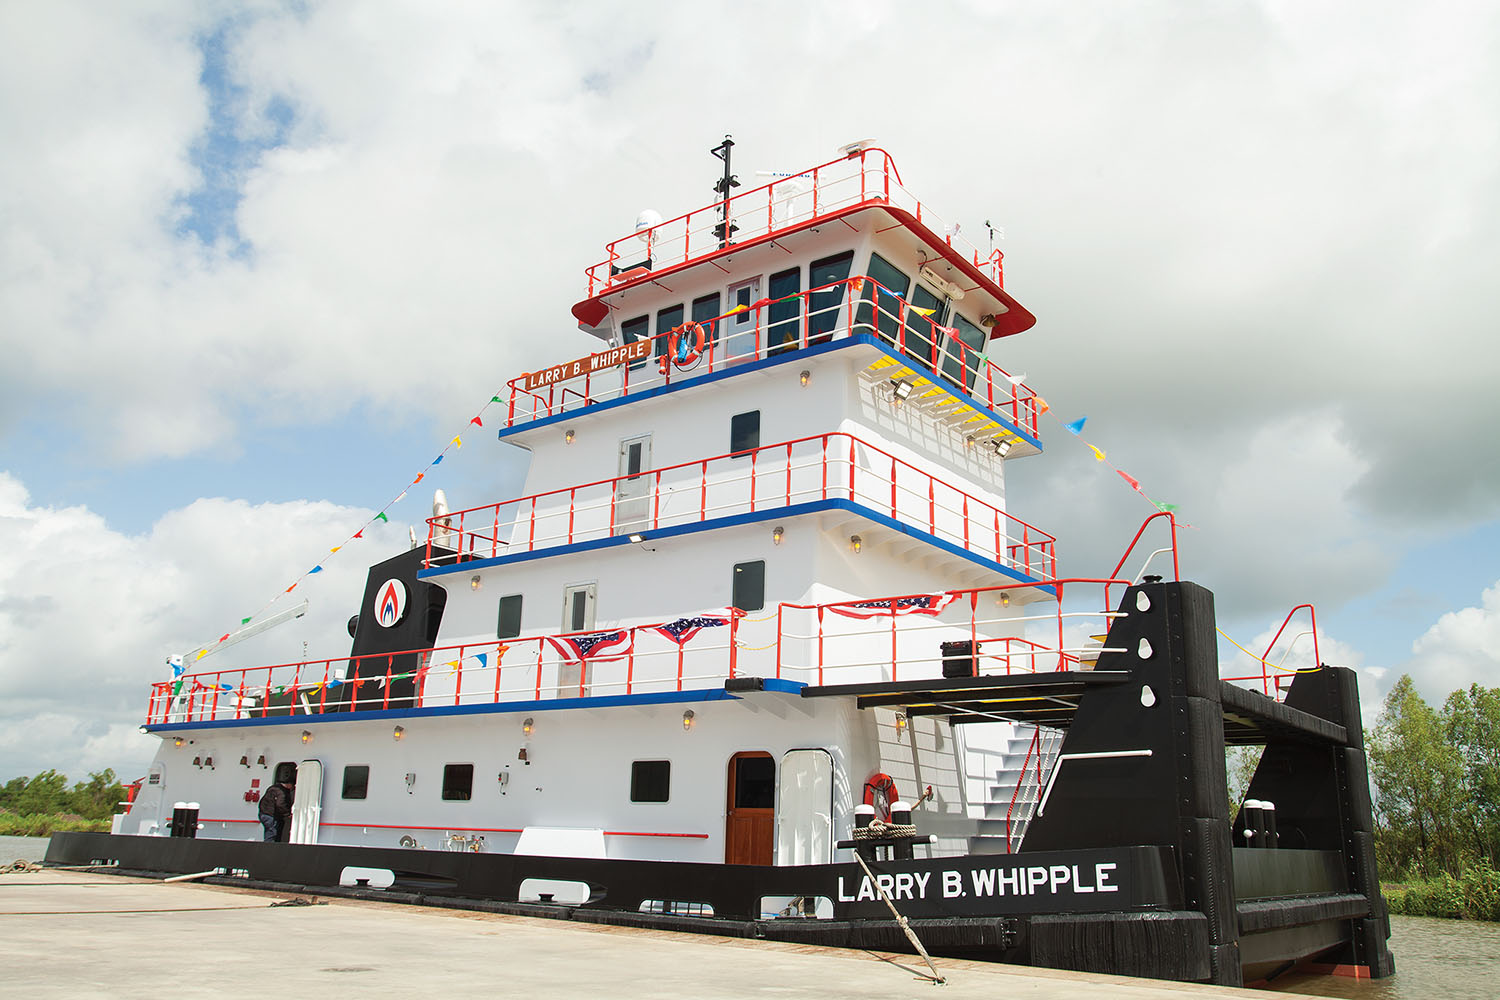 Maritime Partners LLC Christens Mv. Larry B. Whipple